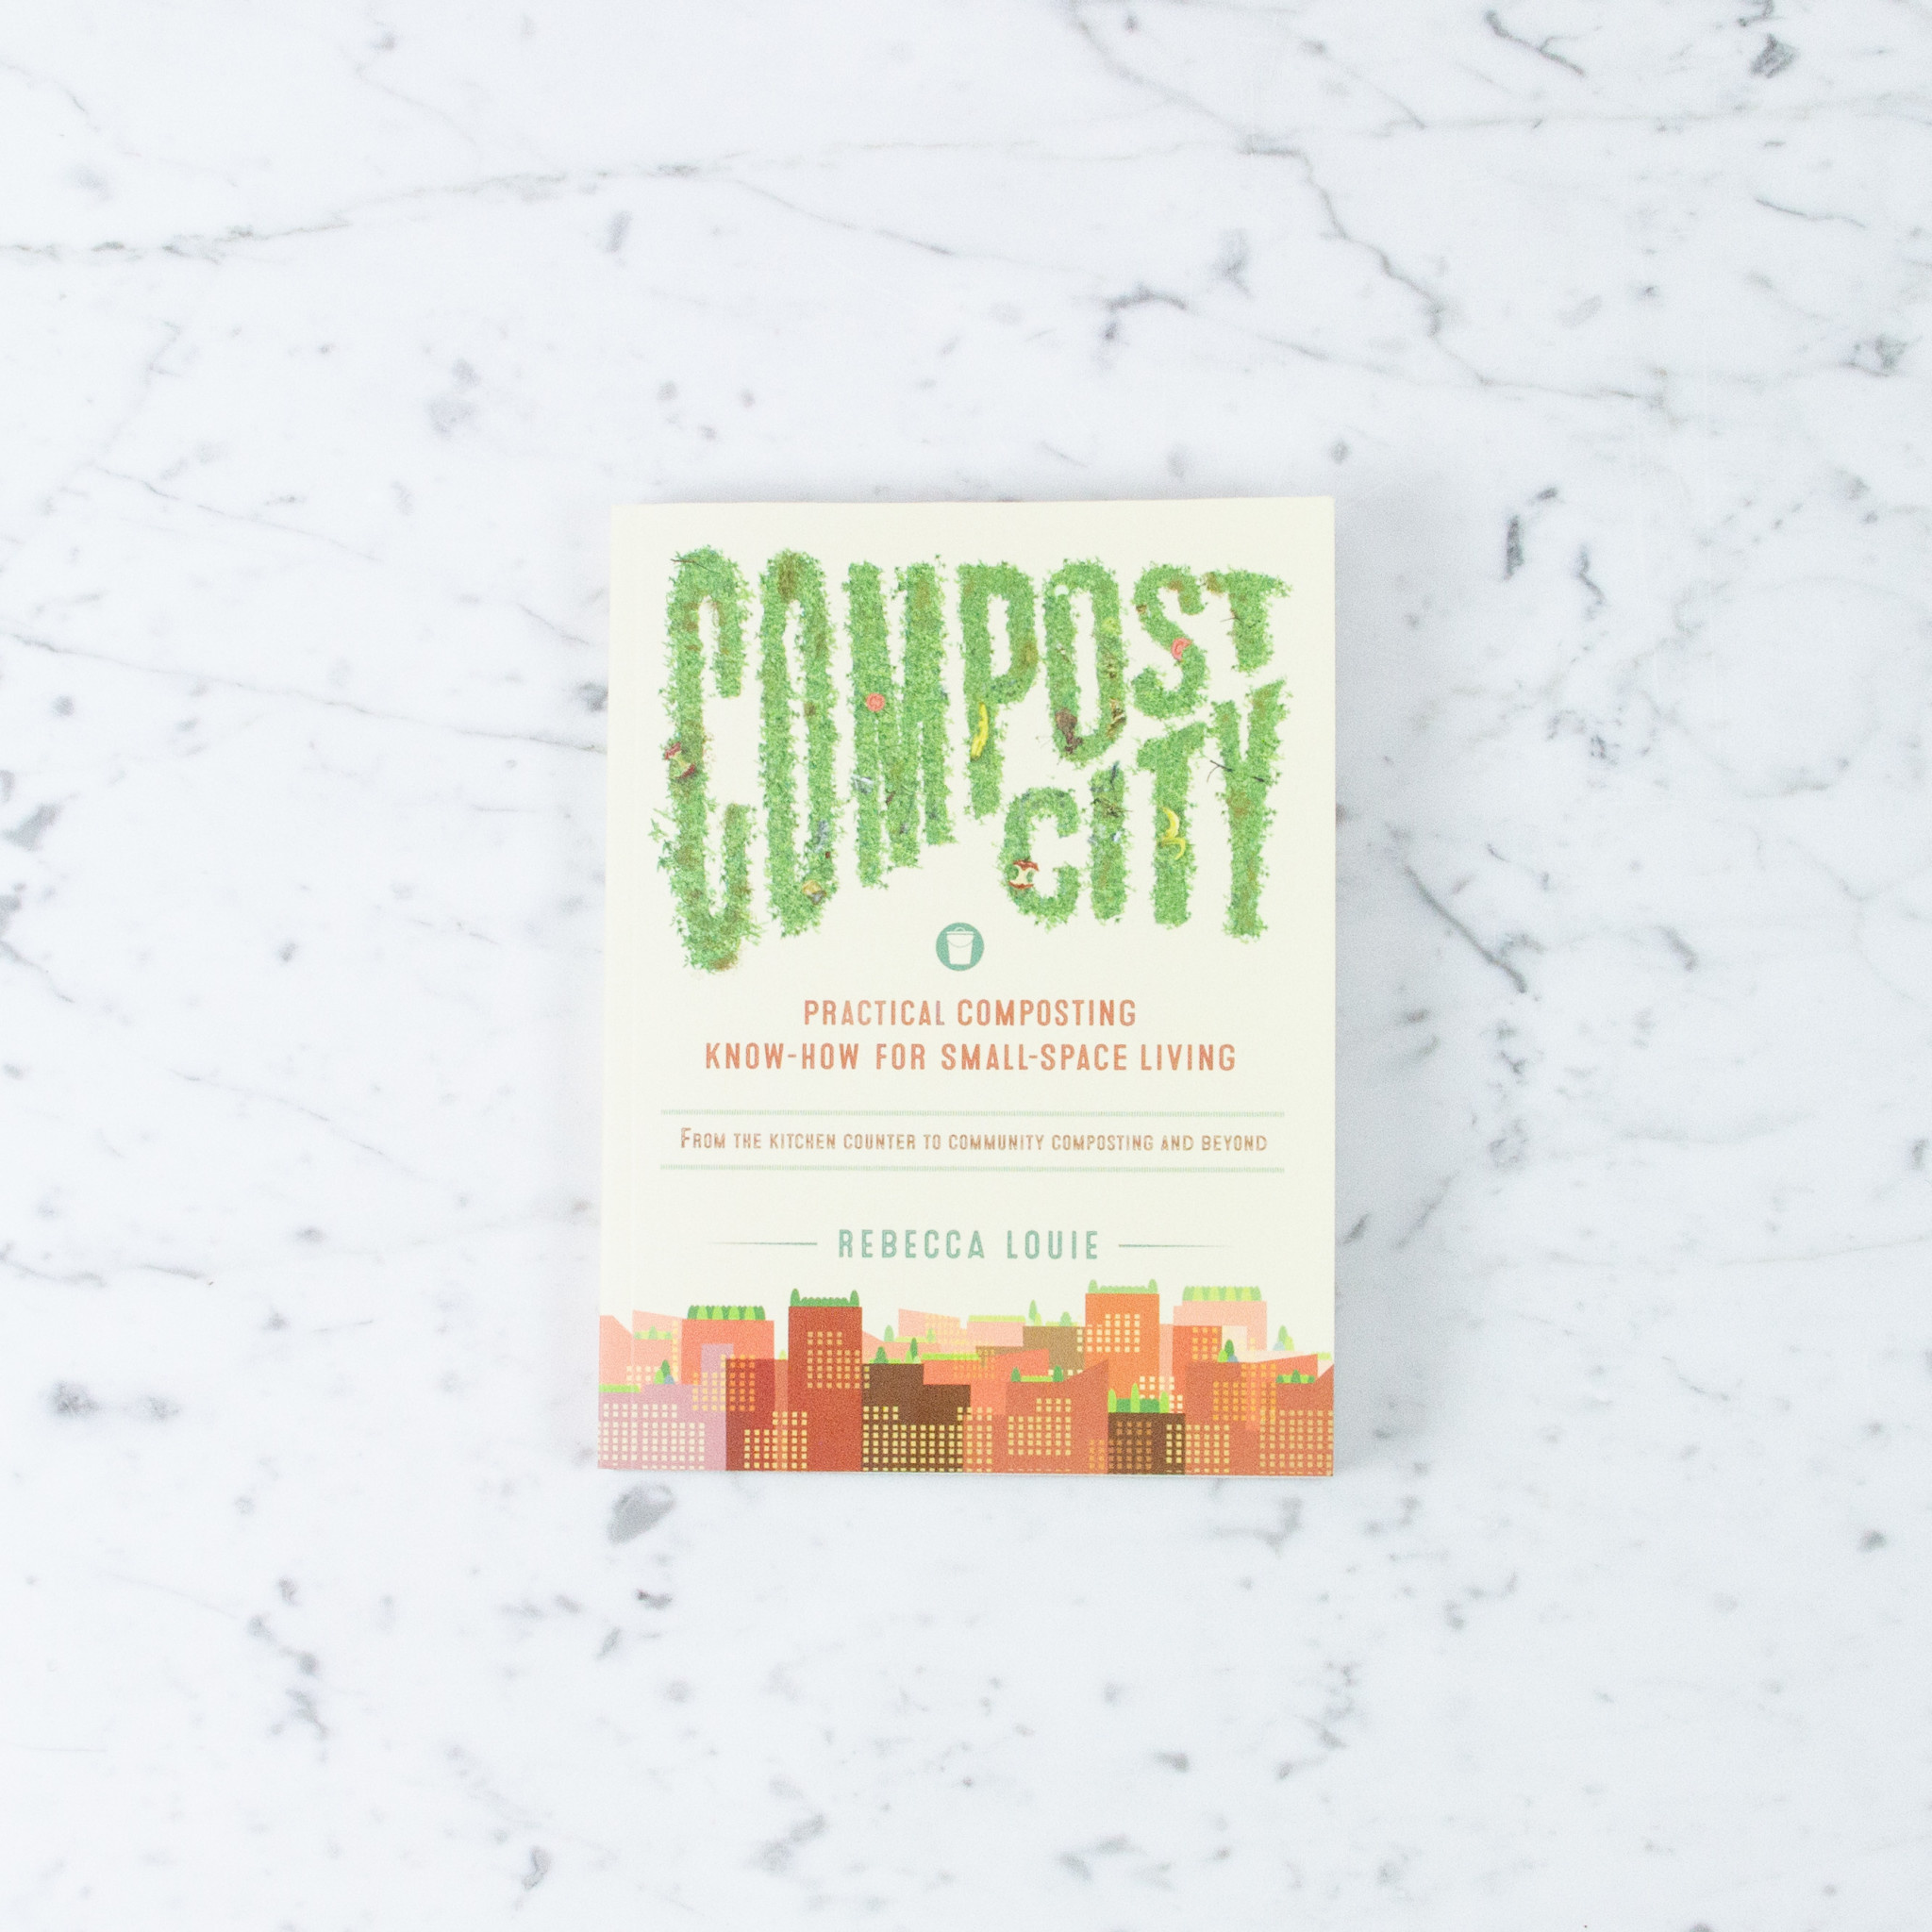 Compost City: Practical Composting Know-How for Small-Space Living by Rebecca Louie